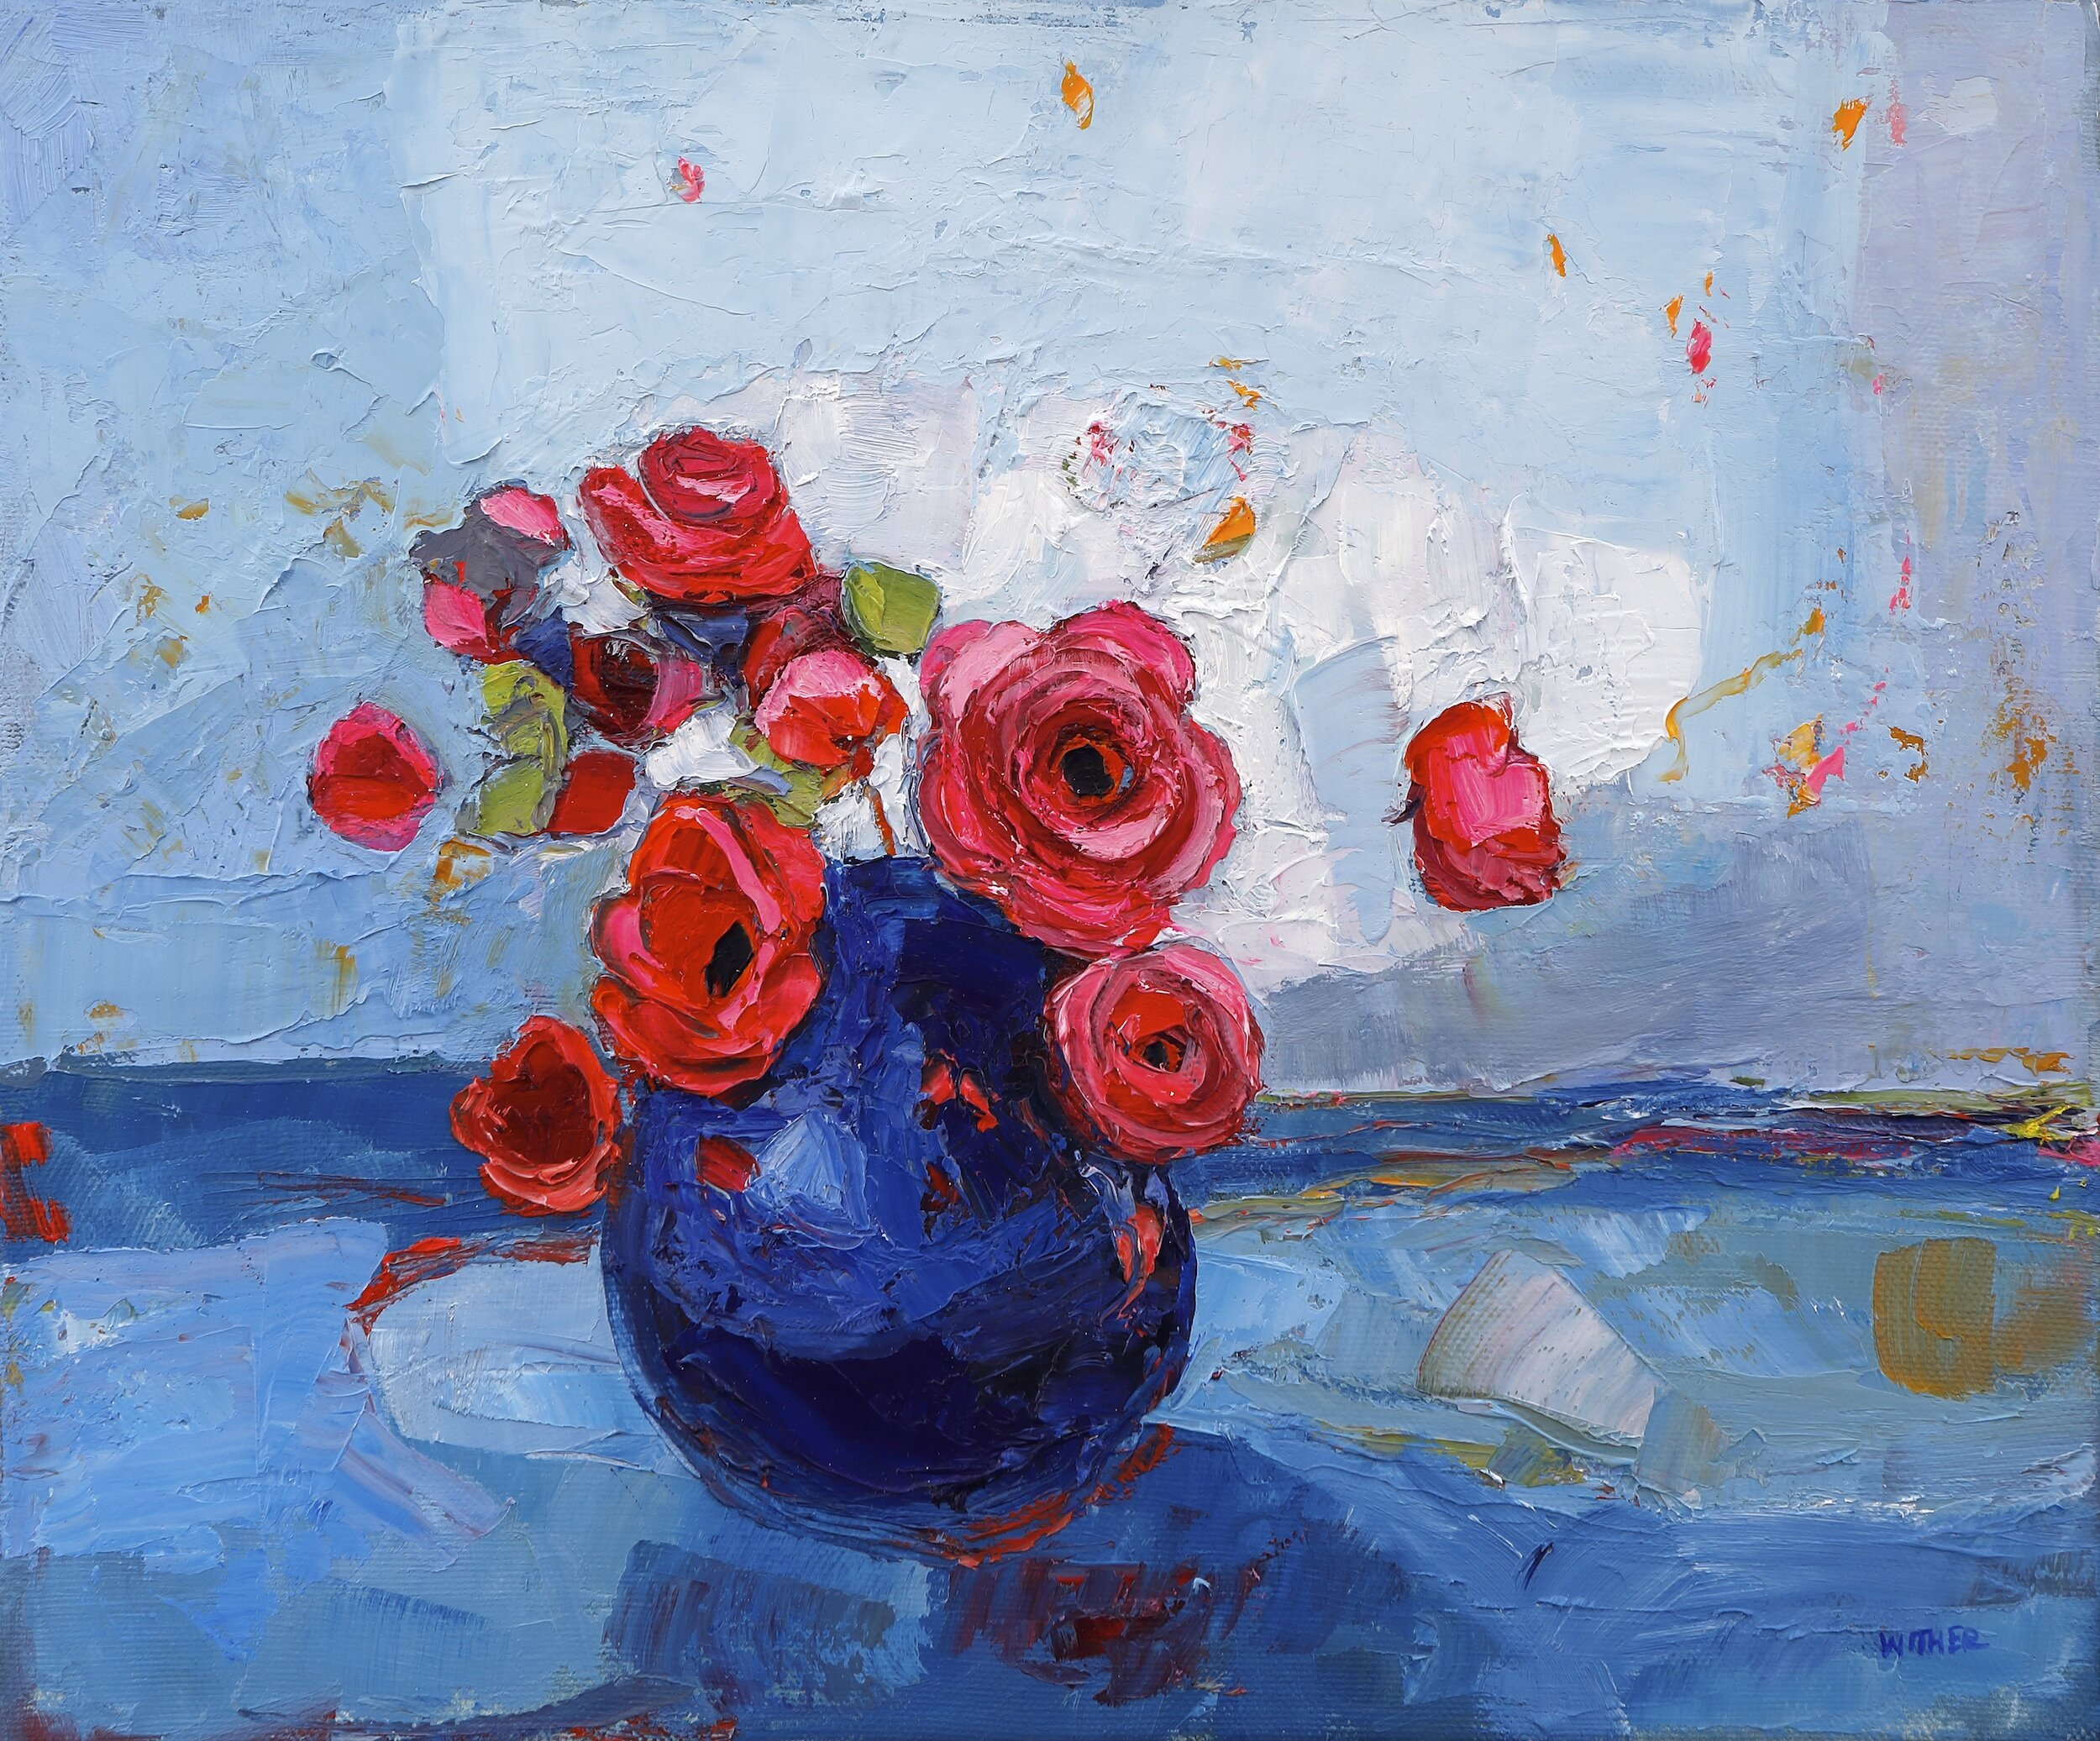 Title: Roses in a Pale Blue Sky  Size: 10x12in  Medium: Oil on Canvas  Price: £1500